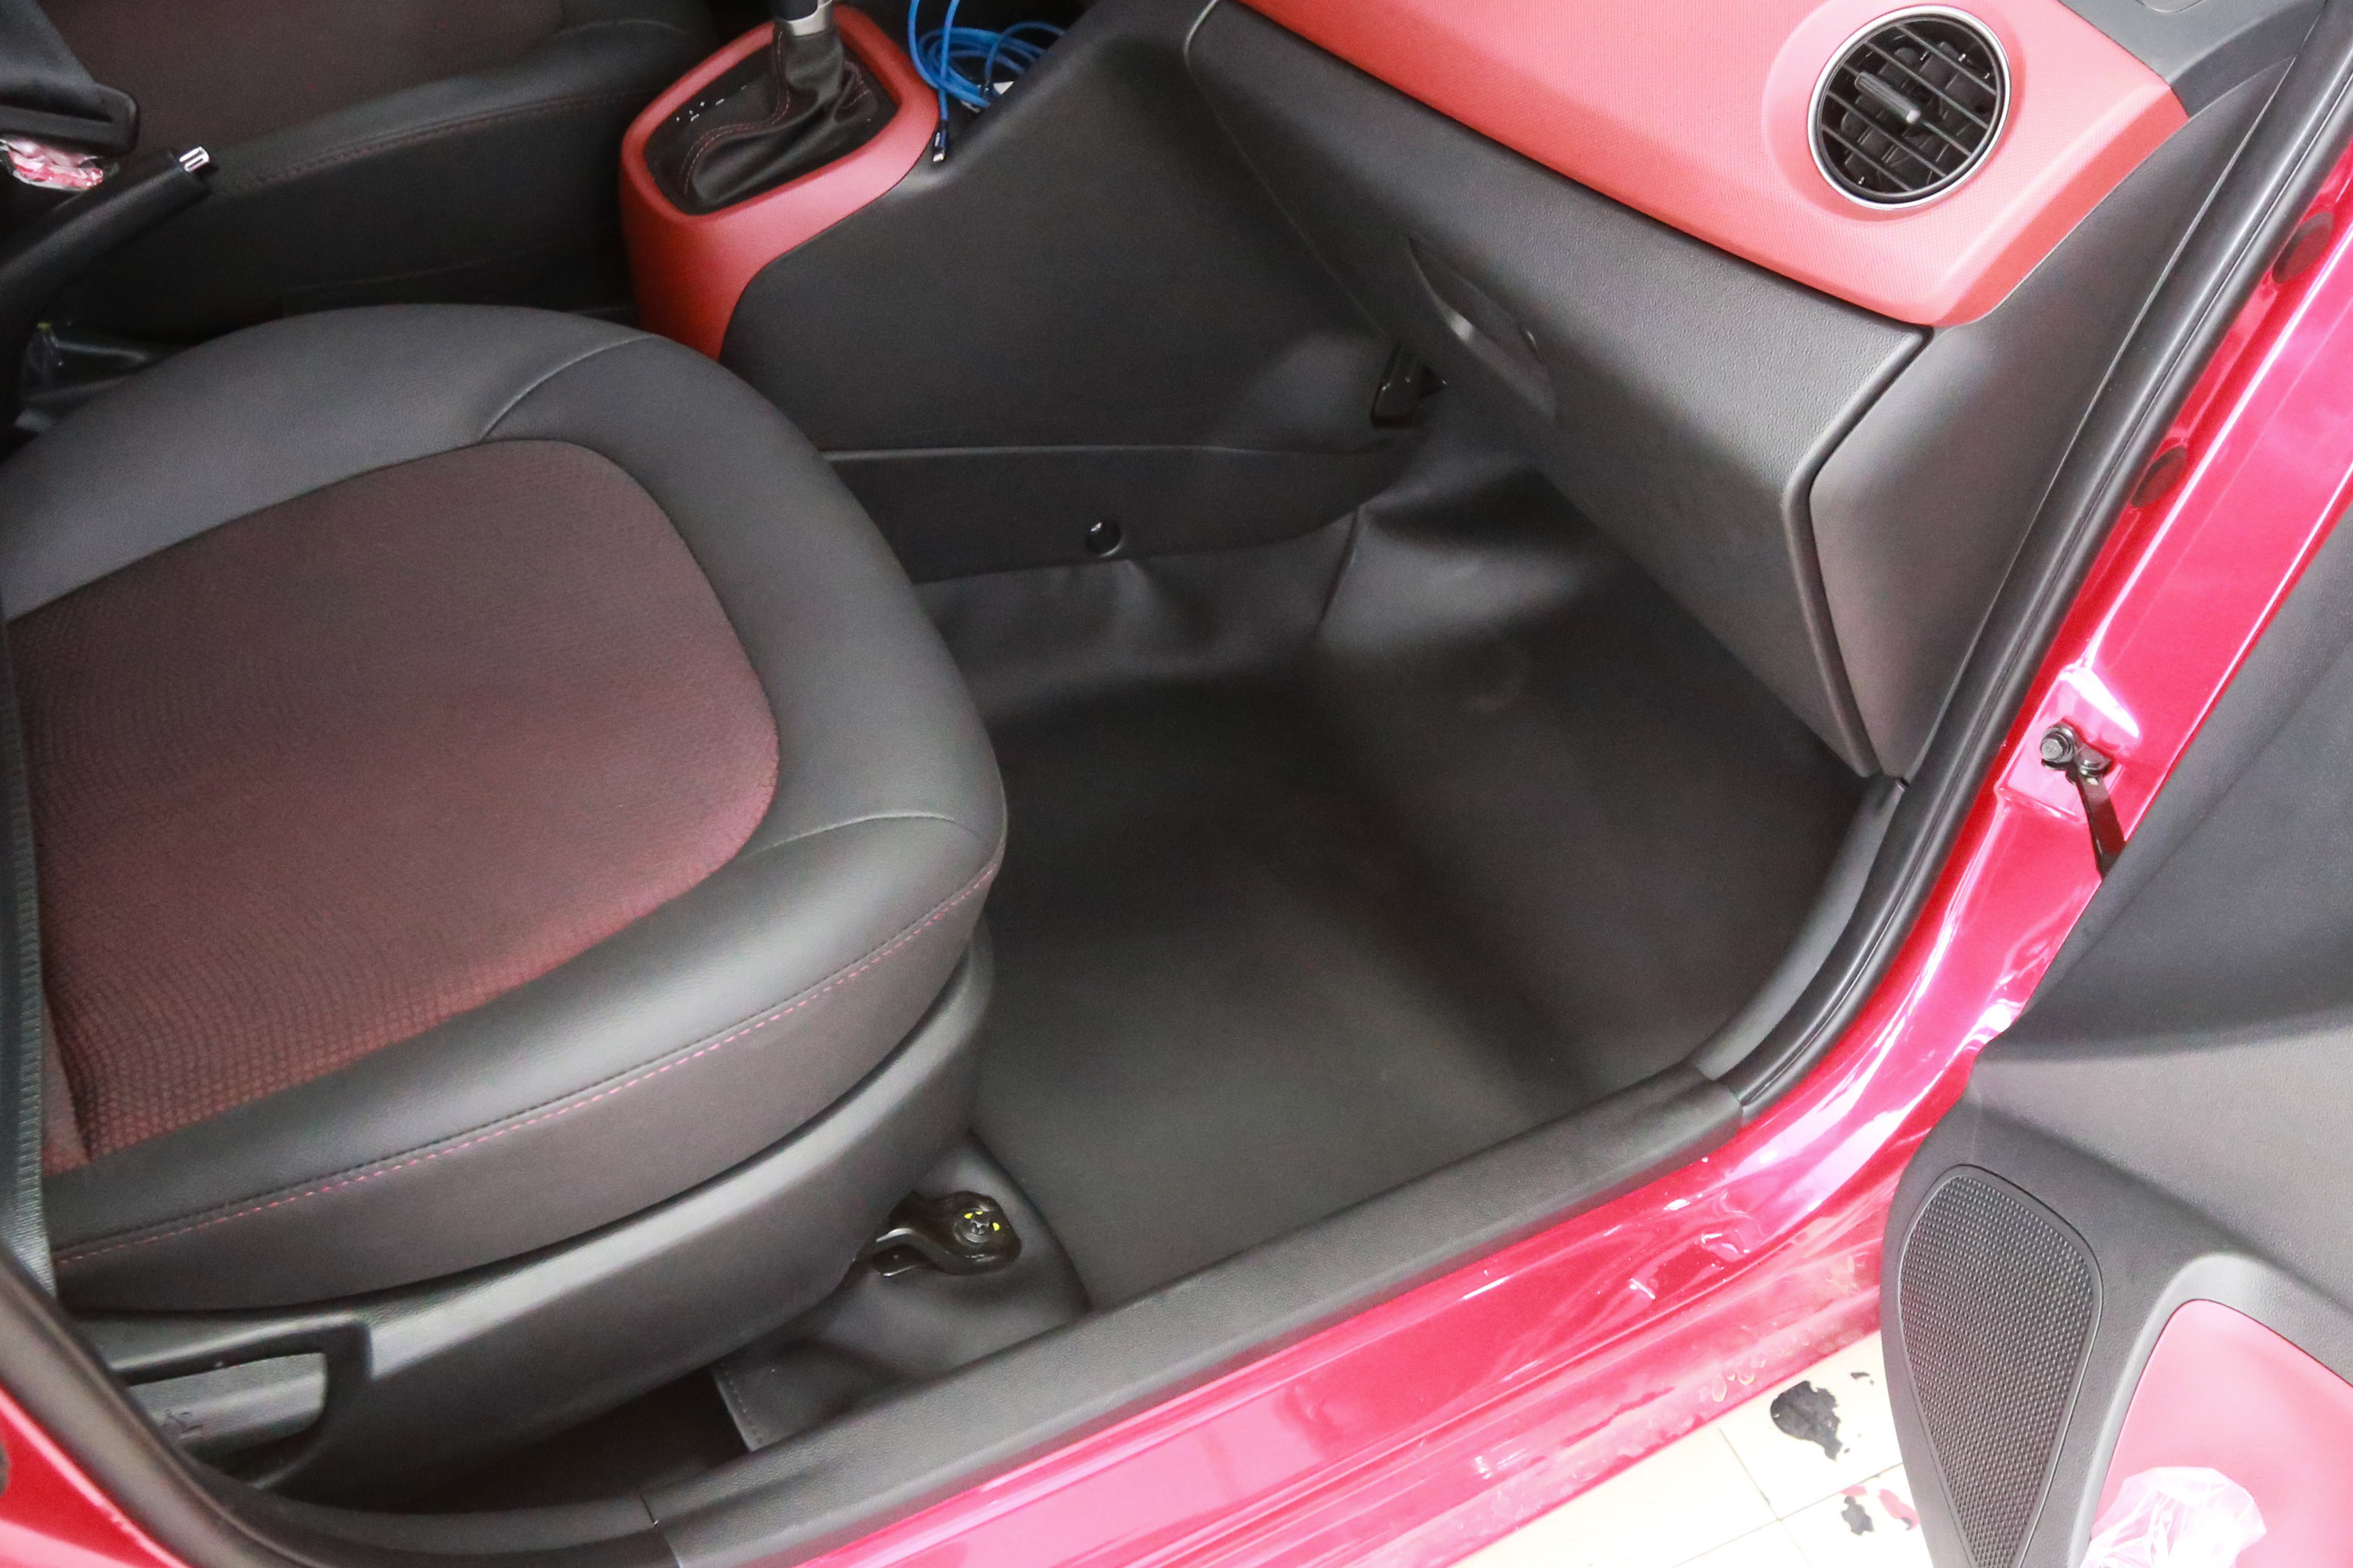 3.-lot-san-hyundai-i10-simili-lso003-(1)-9334.JPG